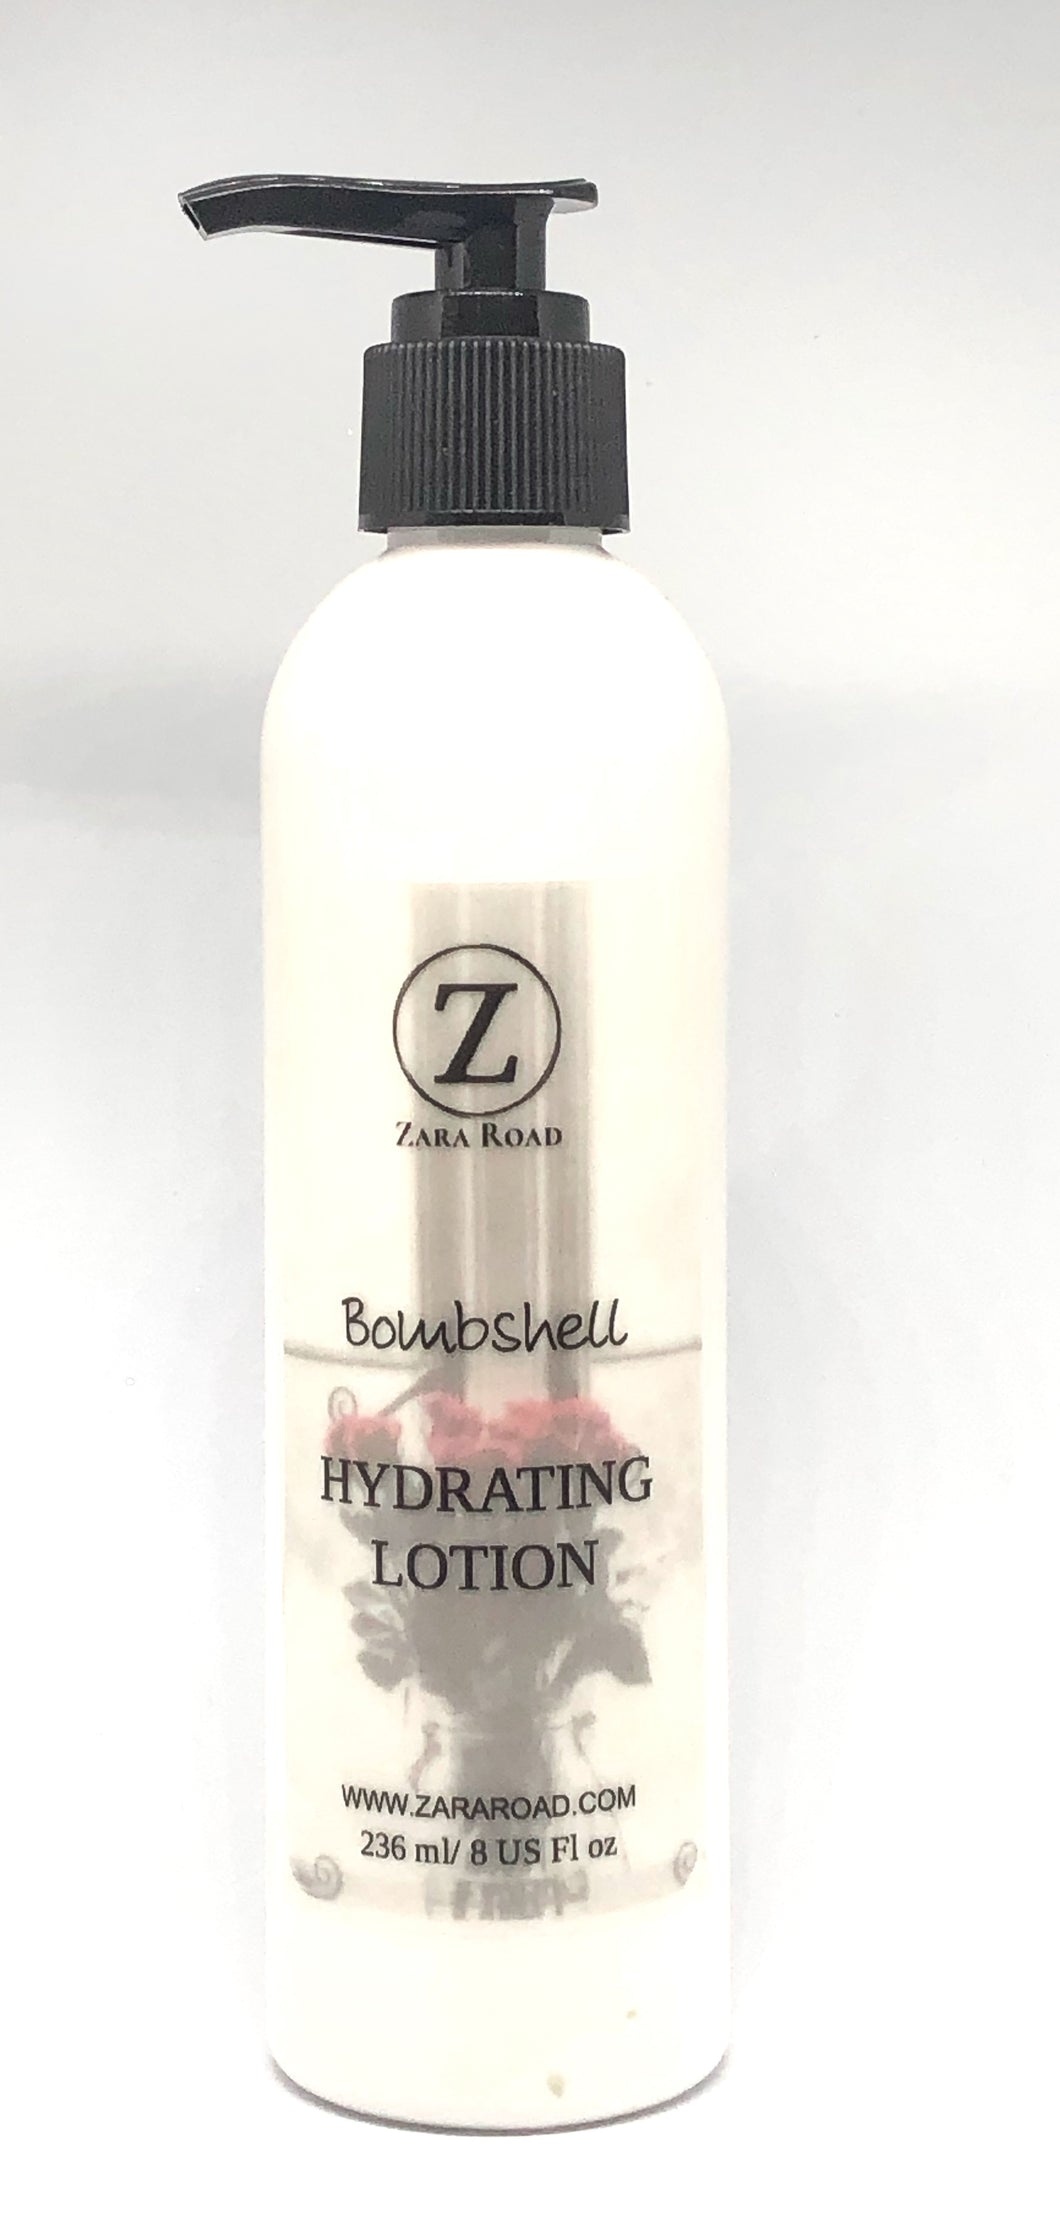 Bombshell Hydrating Lotion